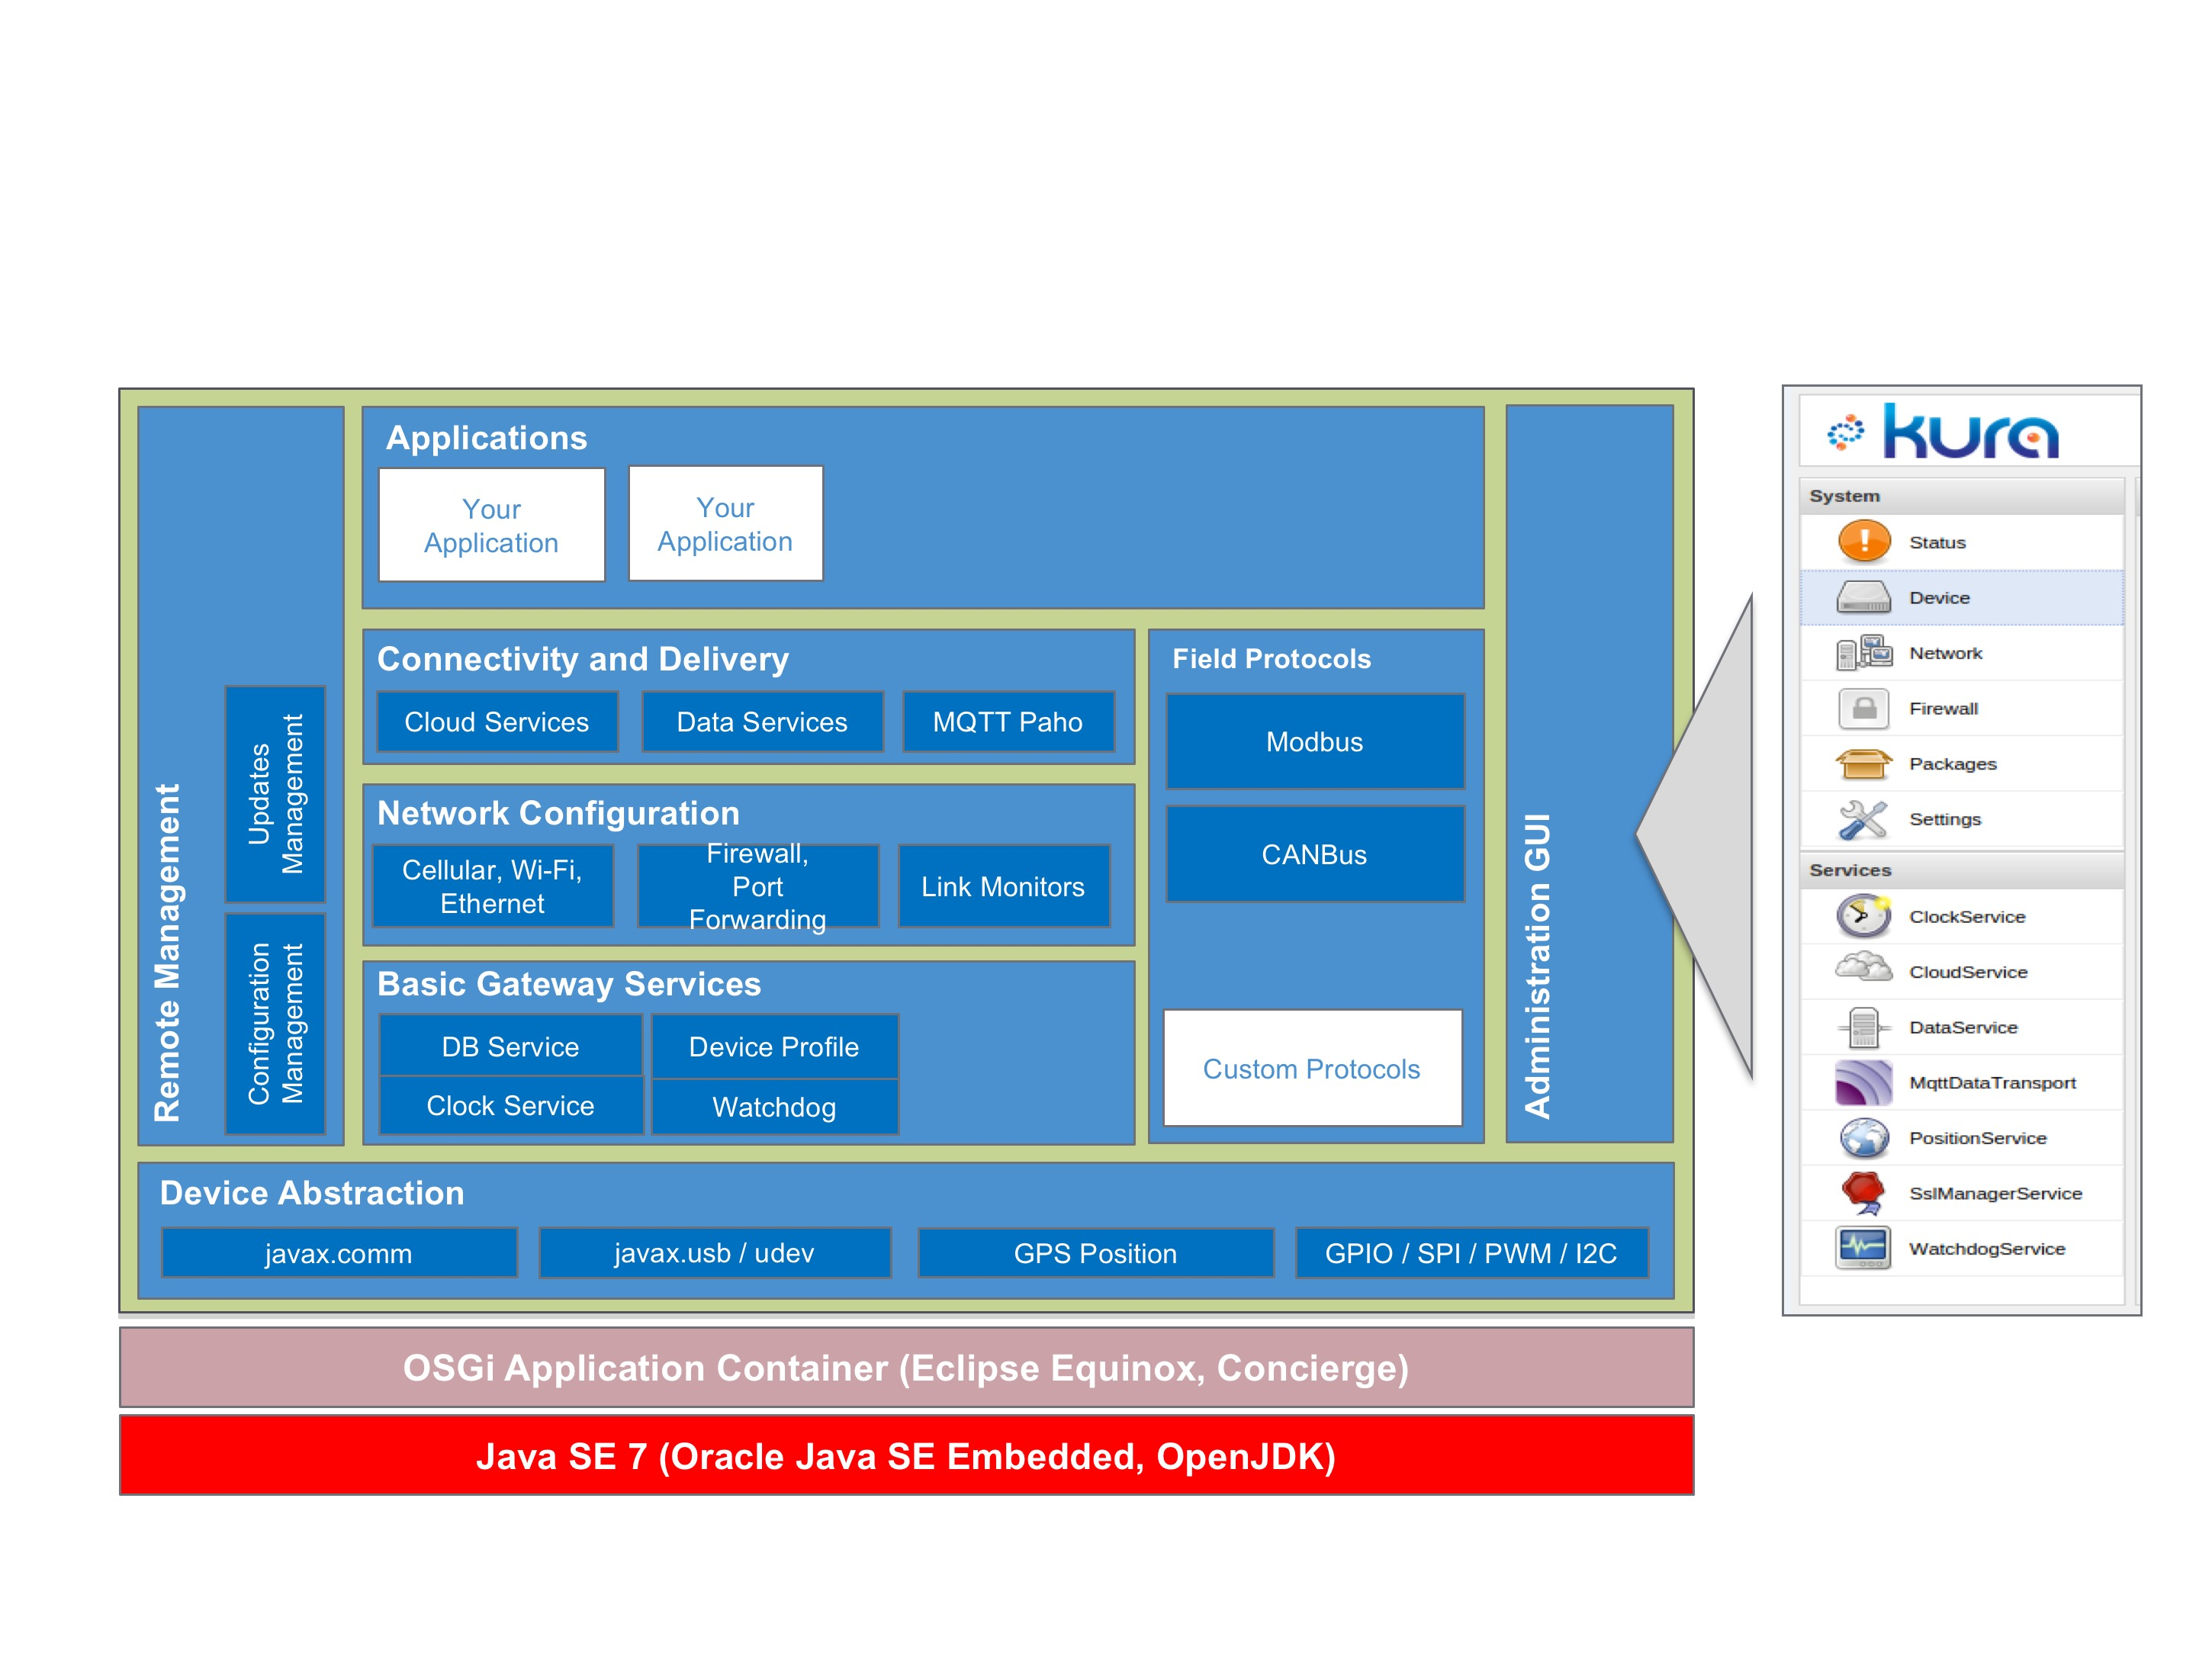 [Figure 2 | Eclipse Kura is equipped with many services for application development and remote device management.]